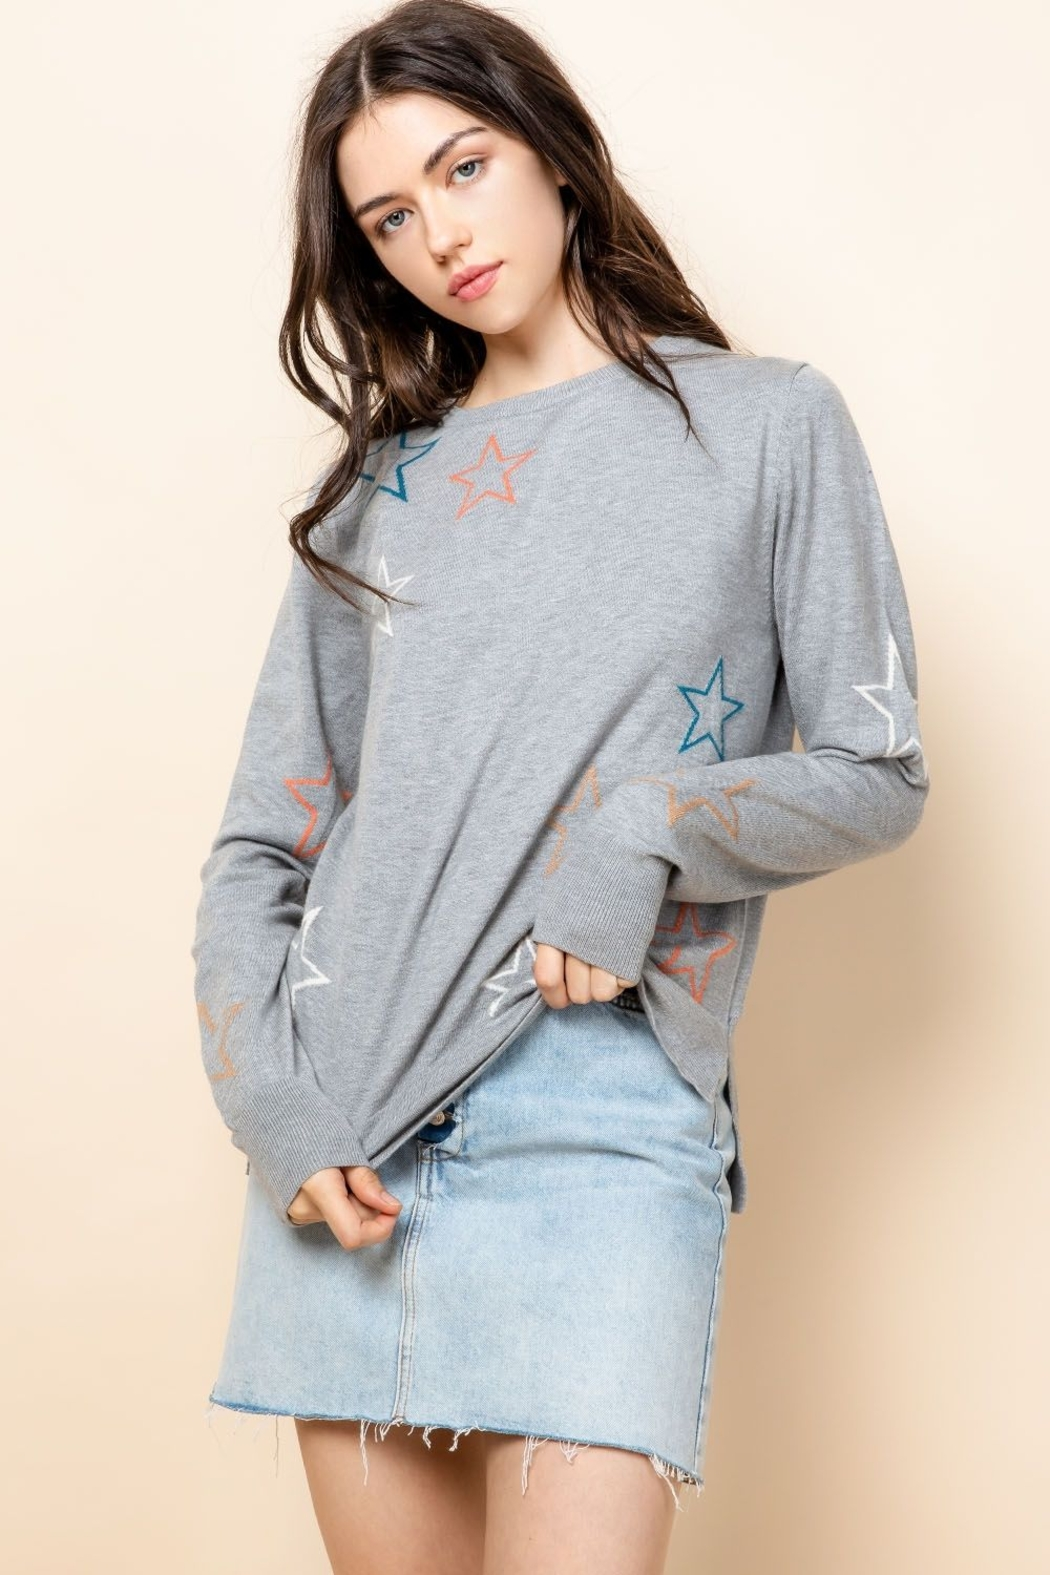 Thml STAR SWEATER - Front Cropped Image